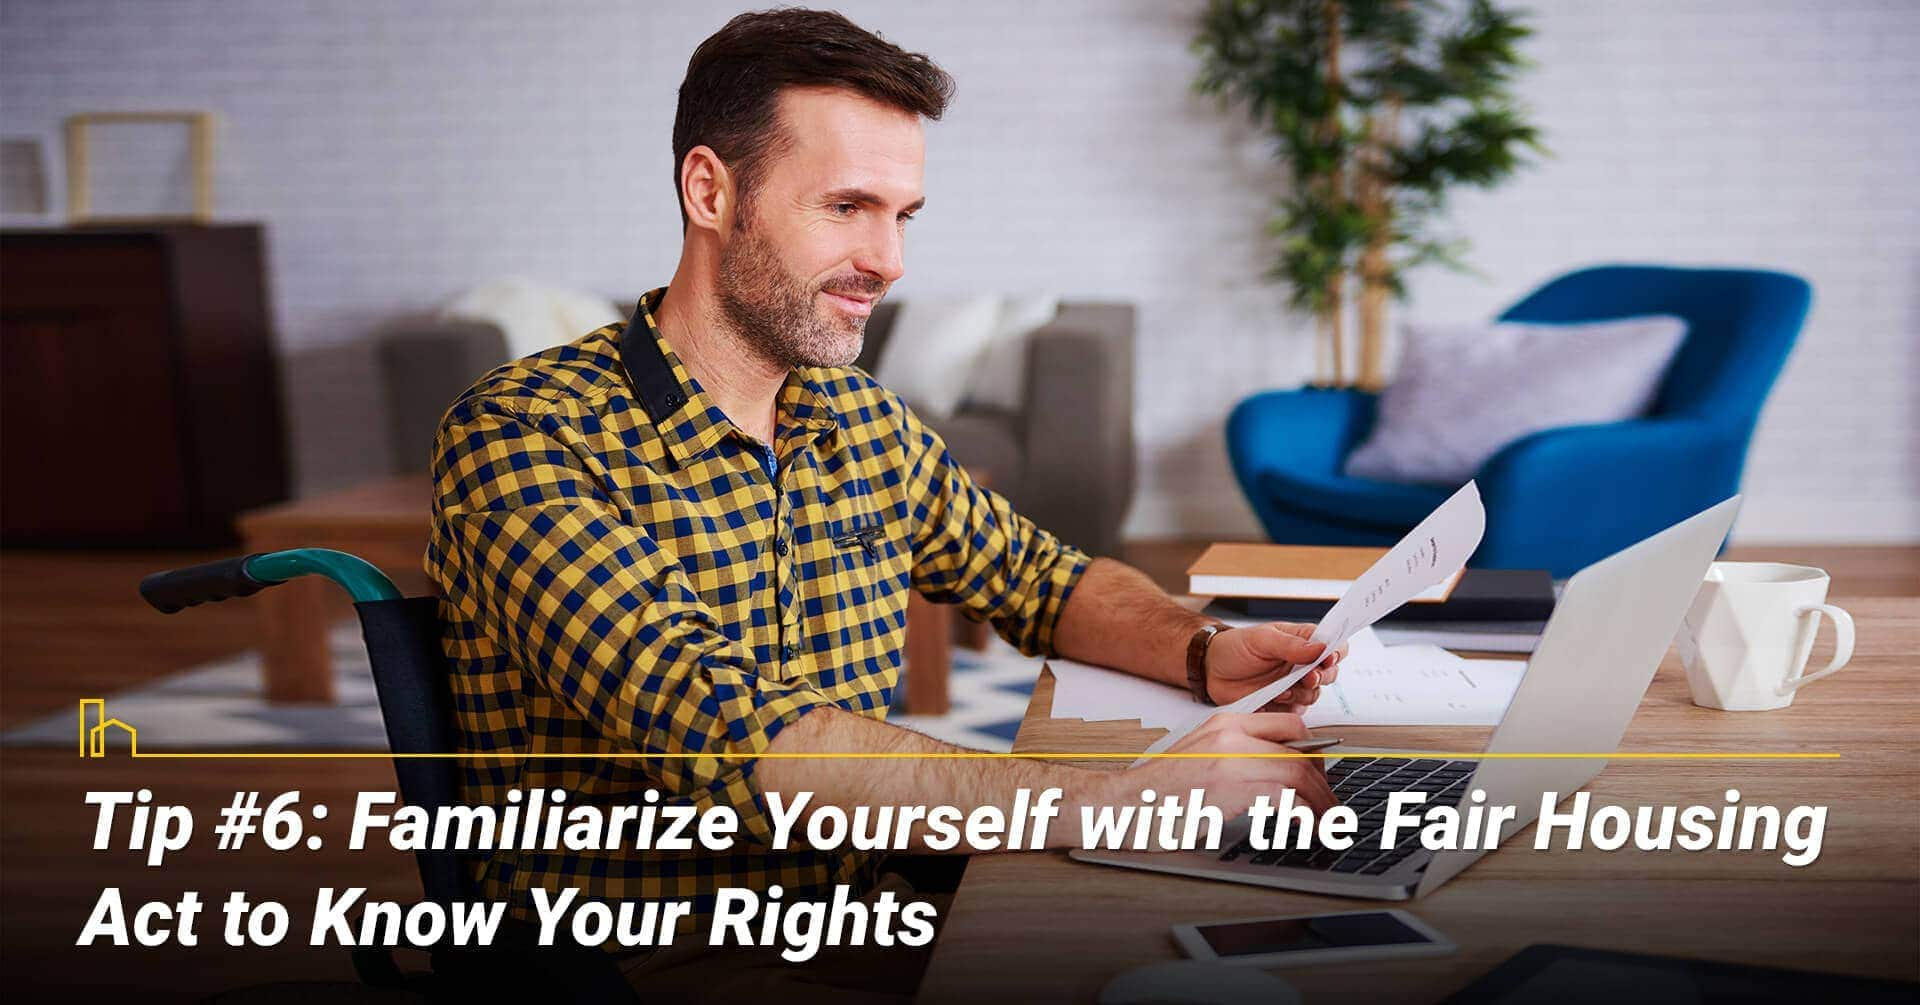 Tip #6: Familiarize Yourself with the Fair Housing Act to Know Your Rights, know the laws and aware of your rights